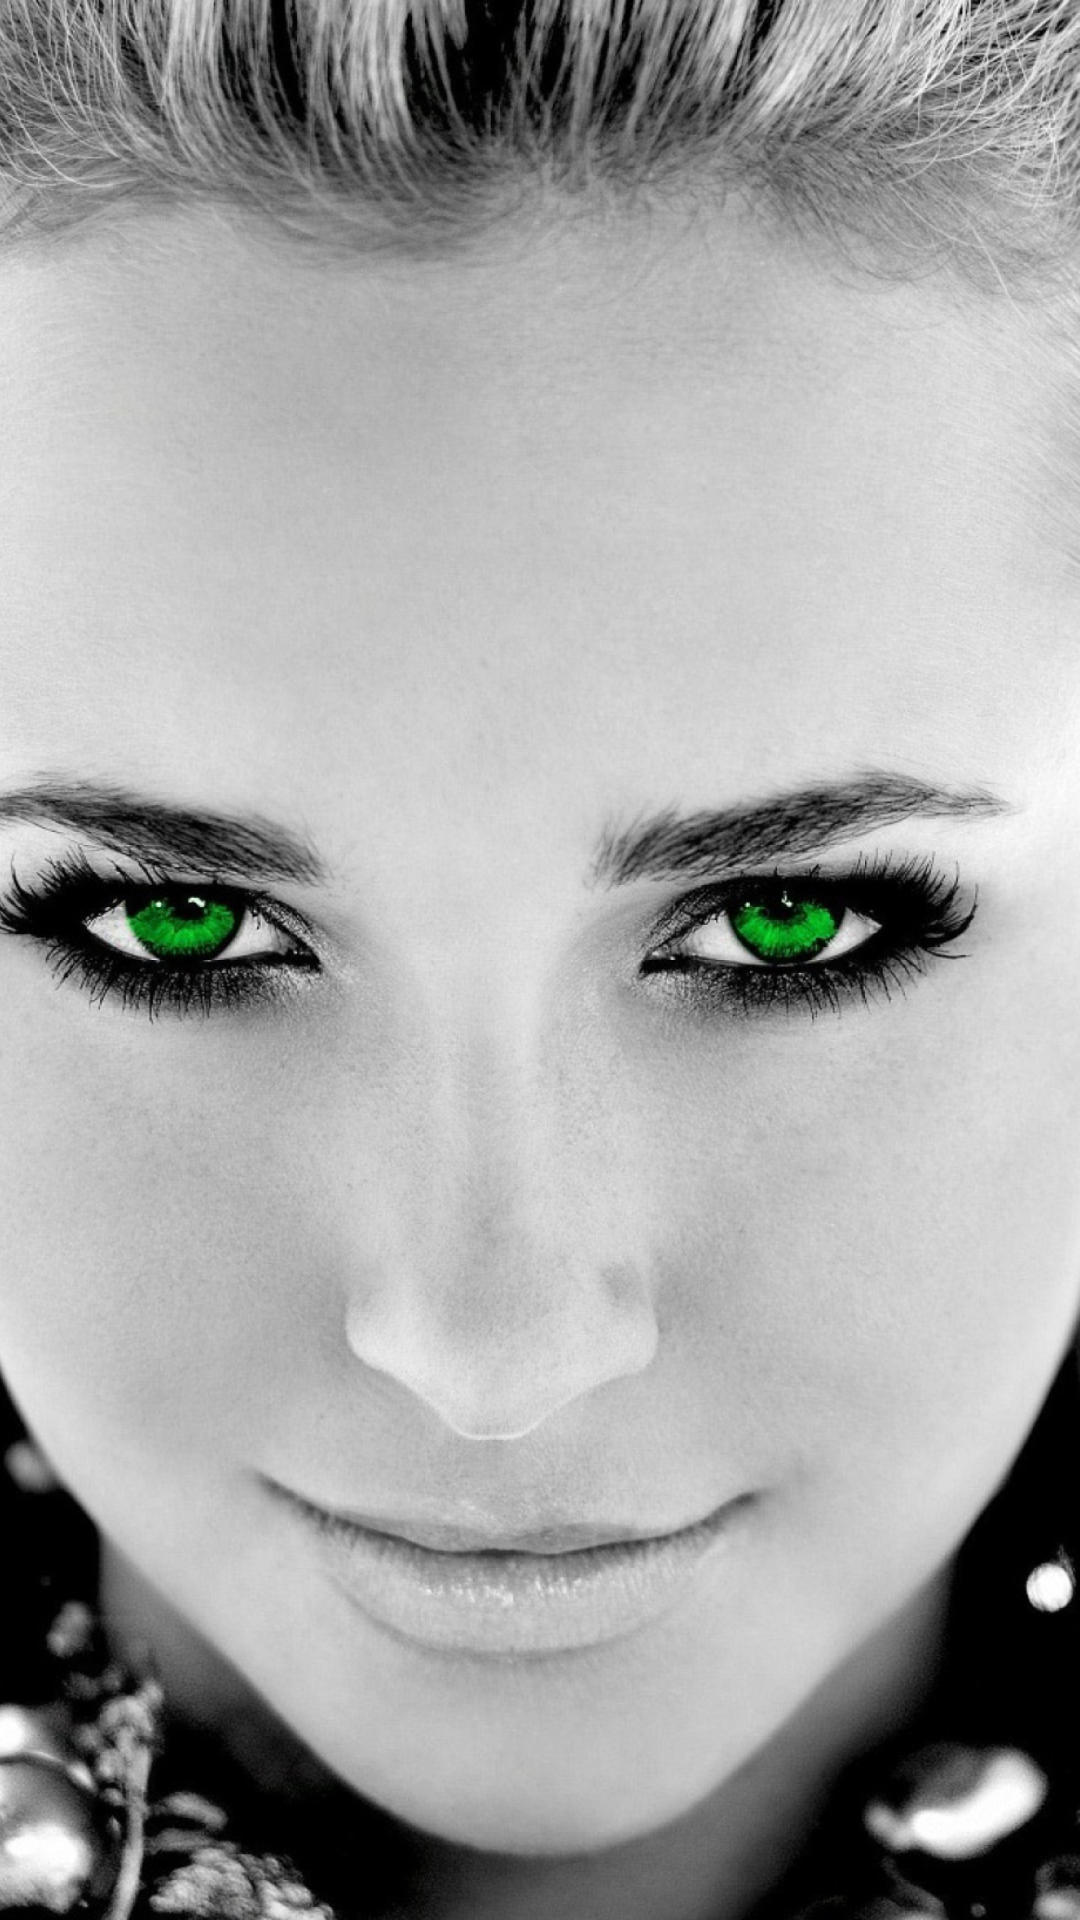 Photos of girls with black eyes